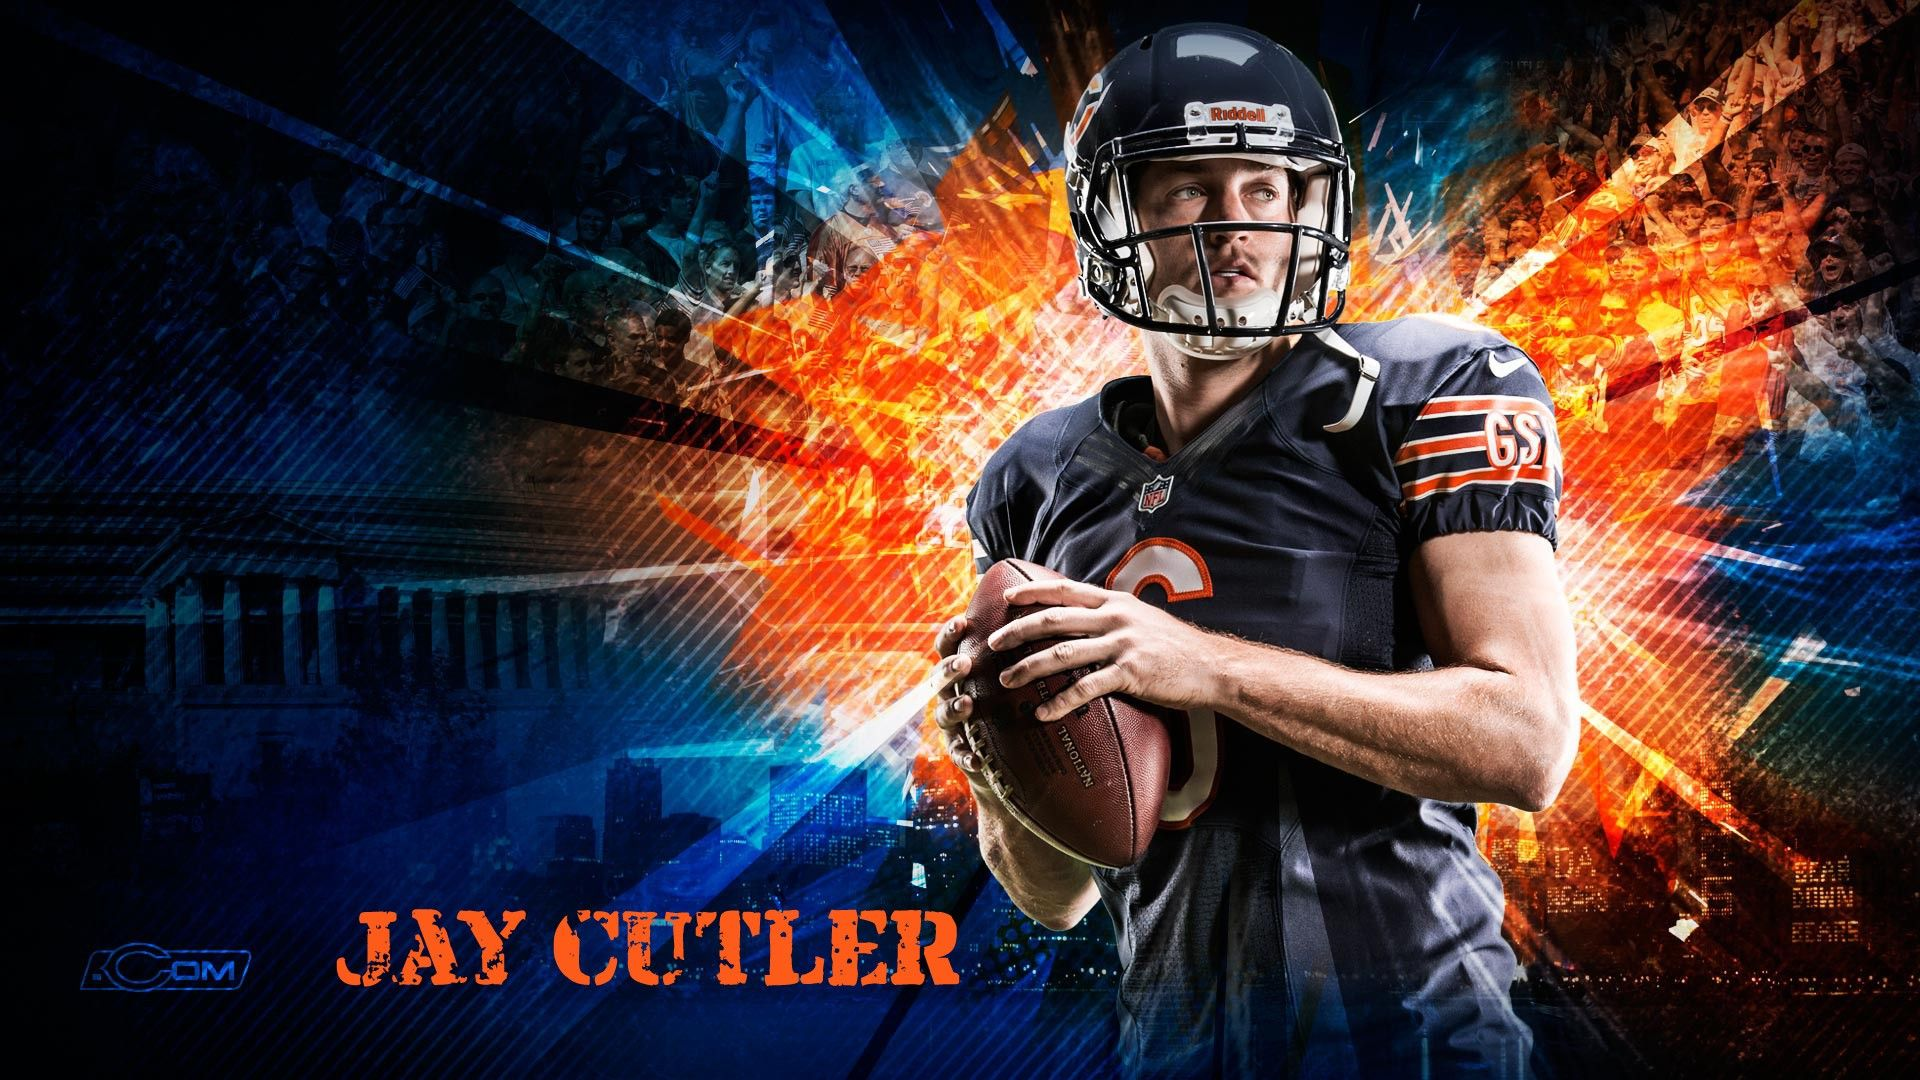 Bears Mac Backgrounds 2020 Nfl Football Wallpapers In 2020 Chicago Bears Wallpaper Nfl Football Wallpaper Chicago Bears